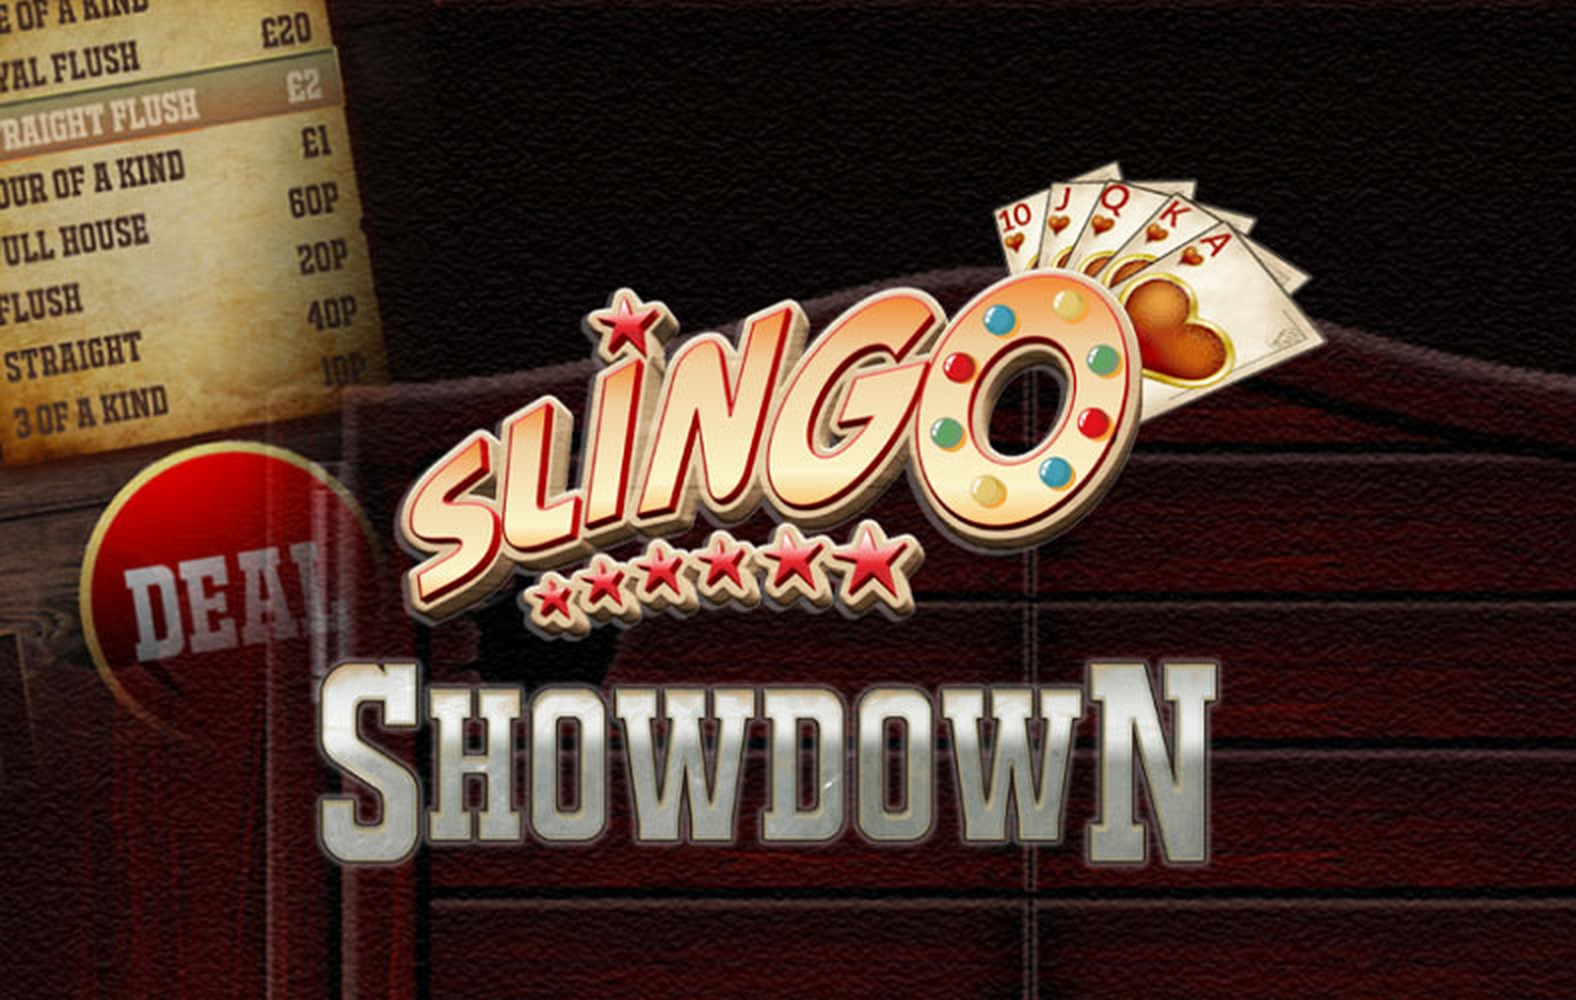 The Slingo Showdown Online Slot Demo Game by Slingo